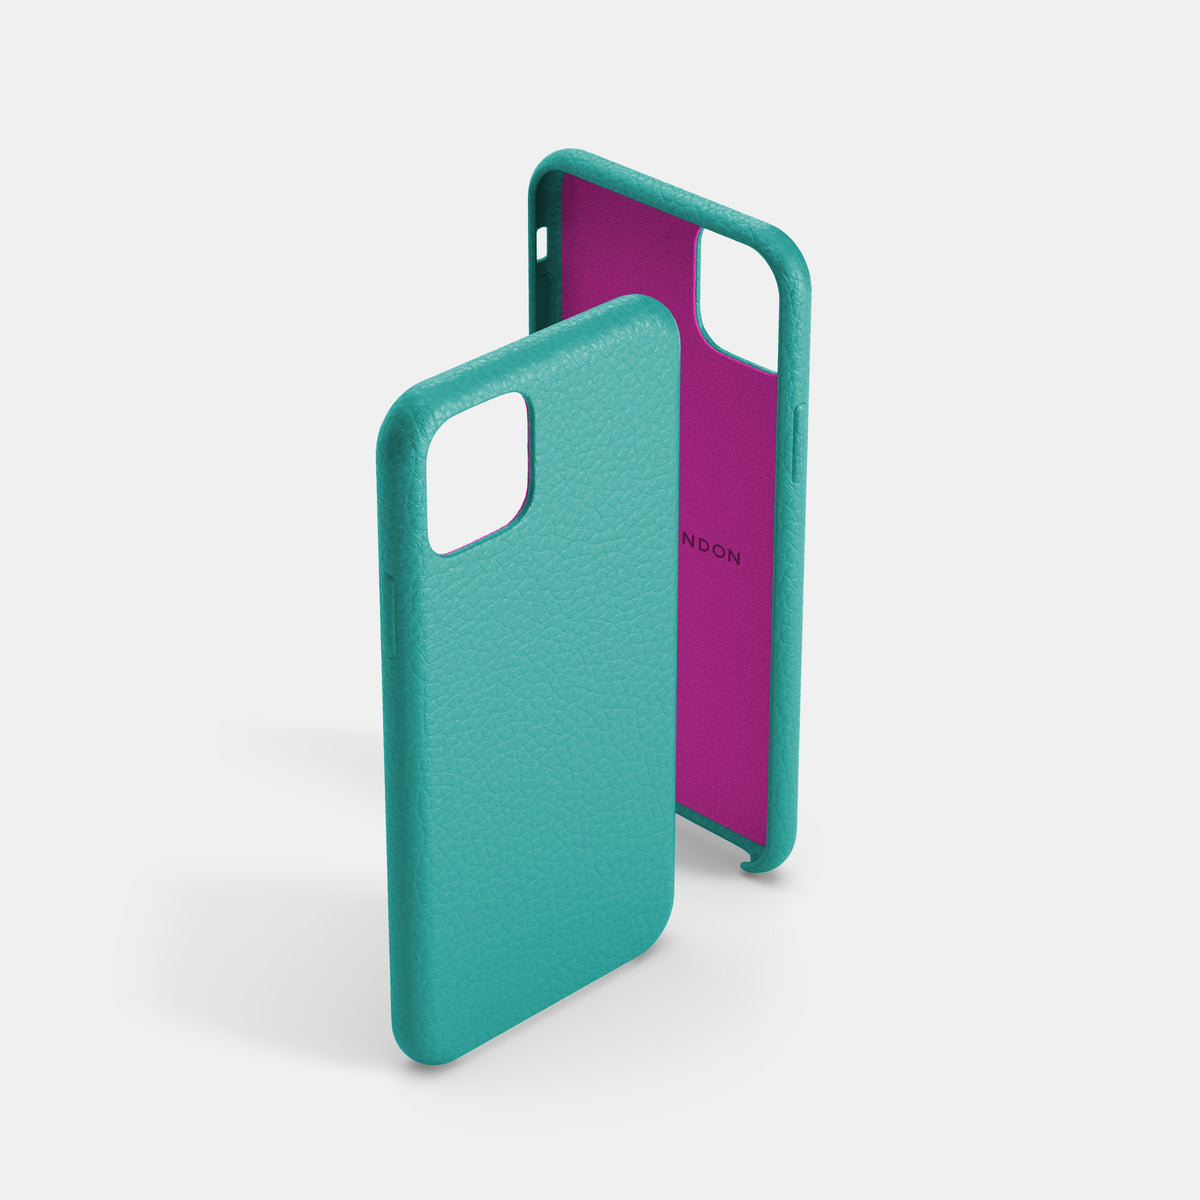 iPhone Leather Shell Case - Mint Sky - RYAN London